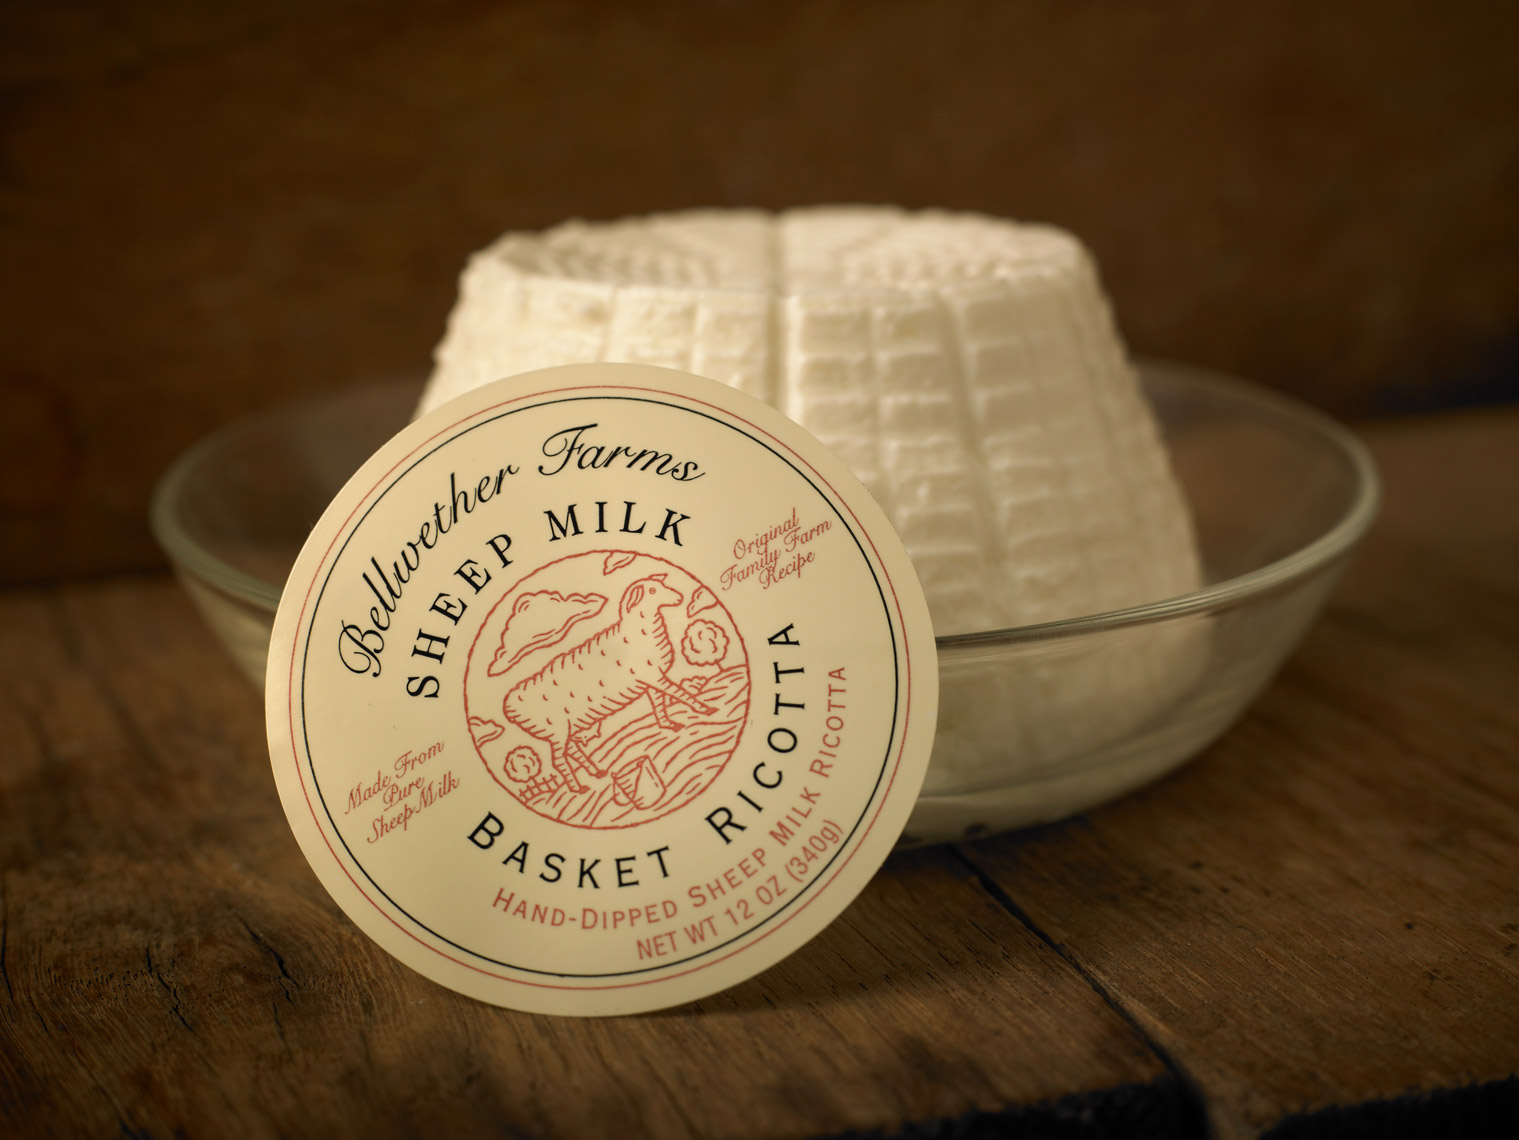 AlanCampbellPhotography, product shot of Bellwether Farms Ricotta